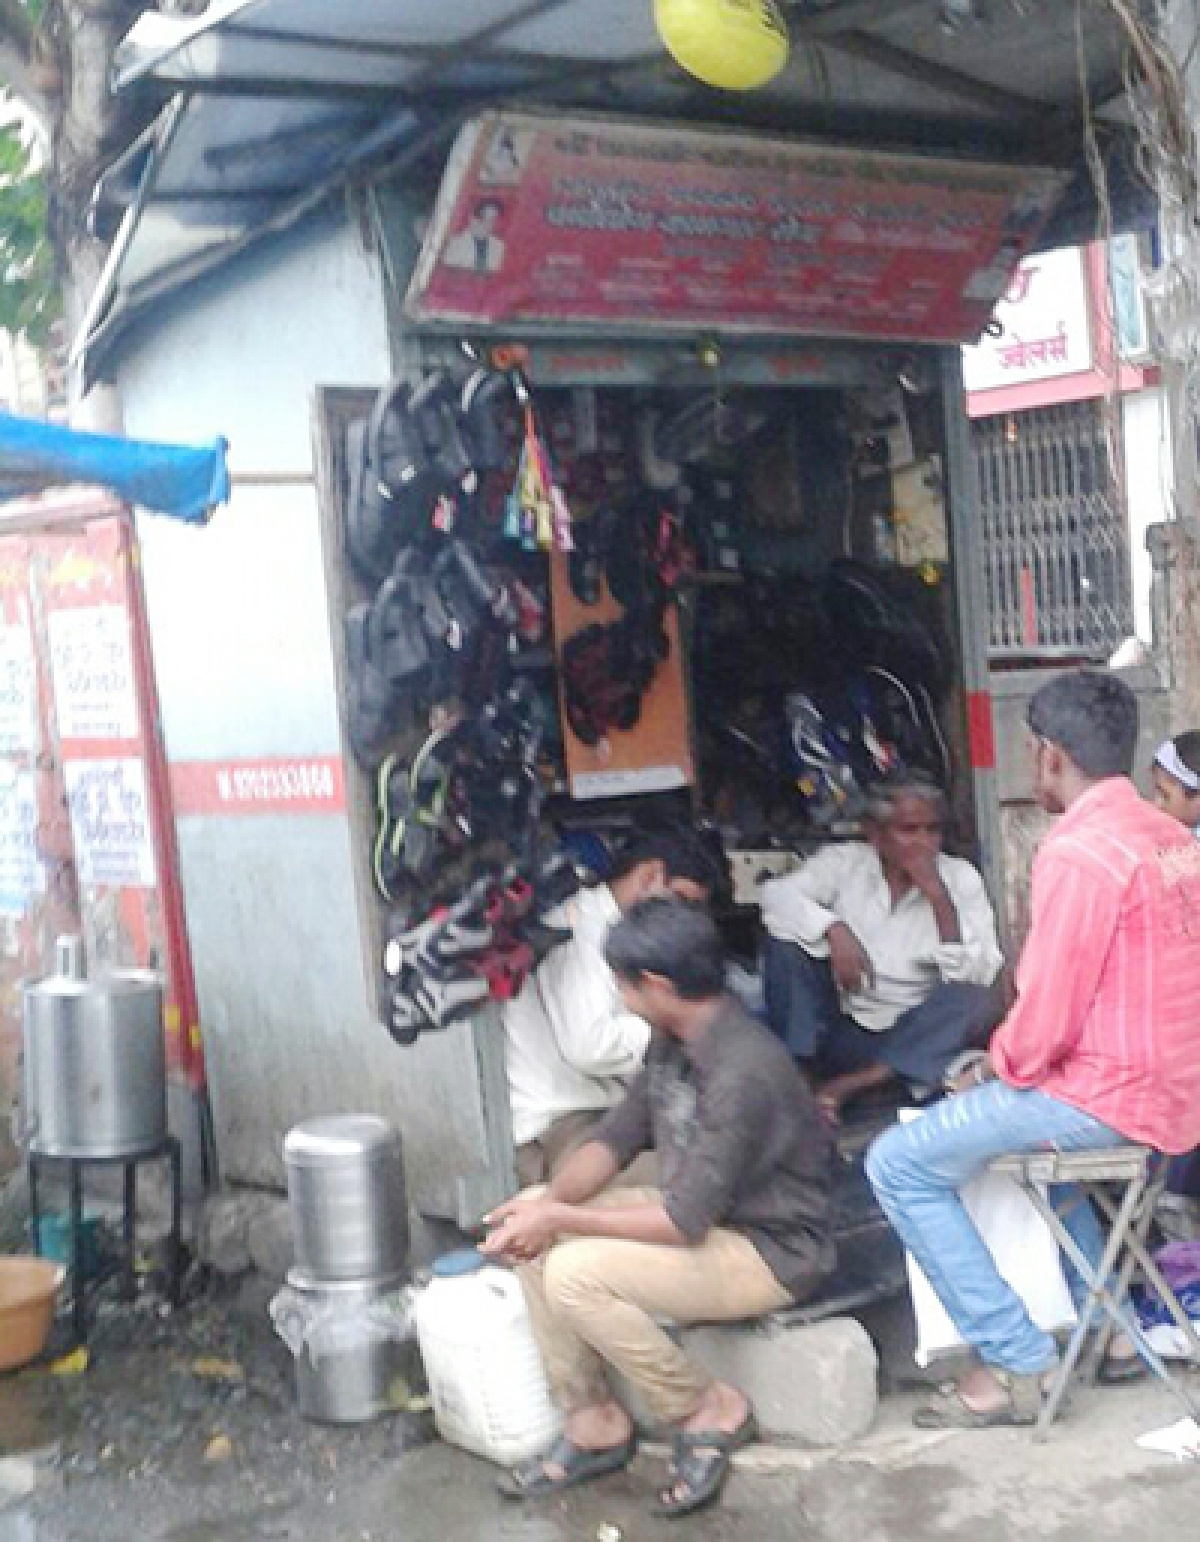 A cobbler stall in Mira Road